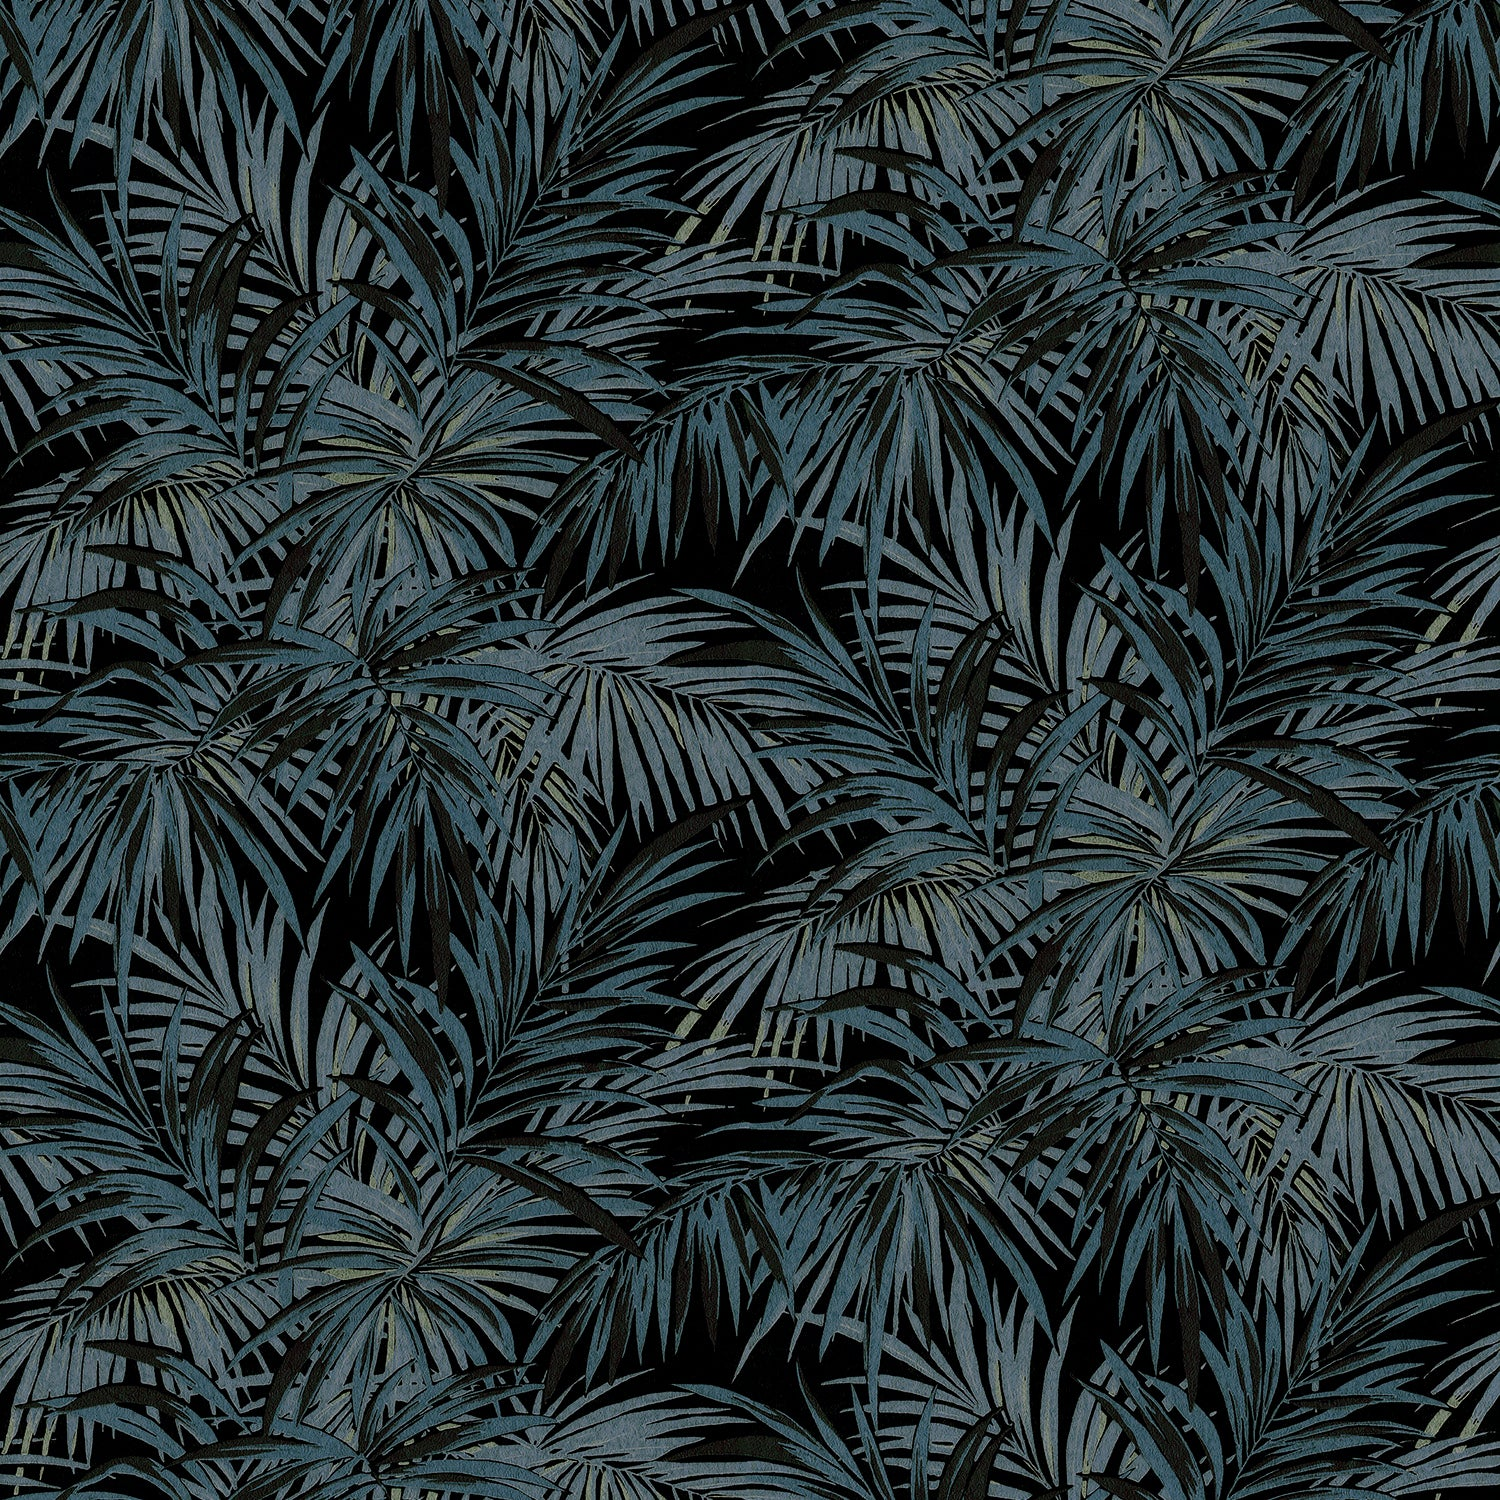 Fabric swatch of a smokey grey and black palm print design stain resistant velvet fabric for curtains or upholstery